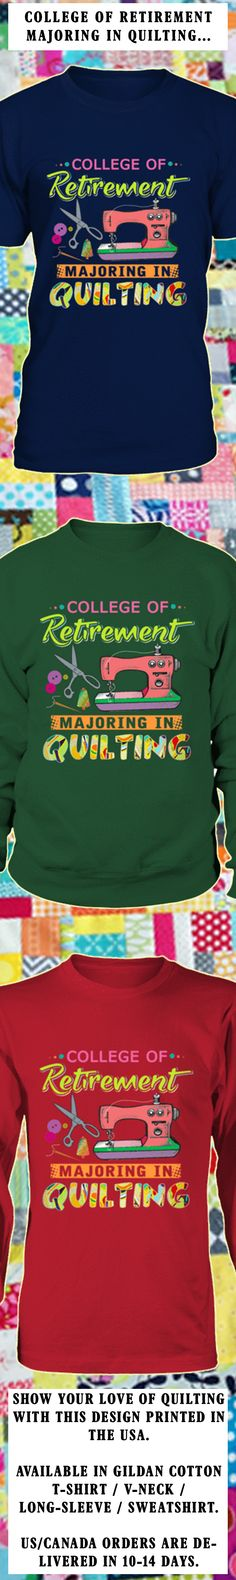 College Of Retirement Majoring In Quilting...  Show your love of Quilting with this design printed in the USA.  Available in Gildan Cotton T-Shirt / Long-Sleeve / Sweatshirt.   US/Canada orders are delivered in 10-14 days.